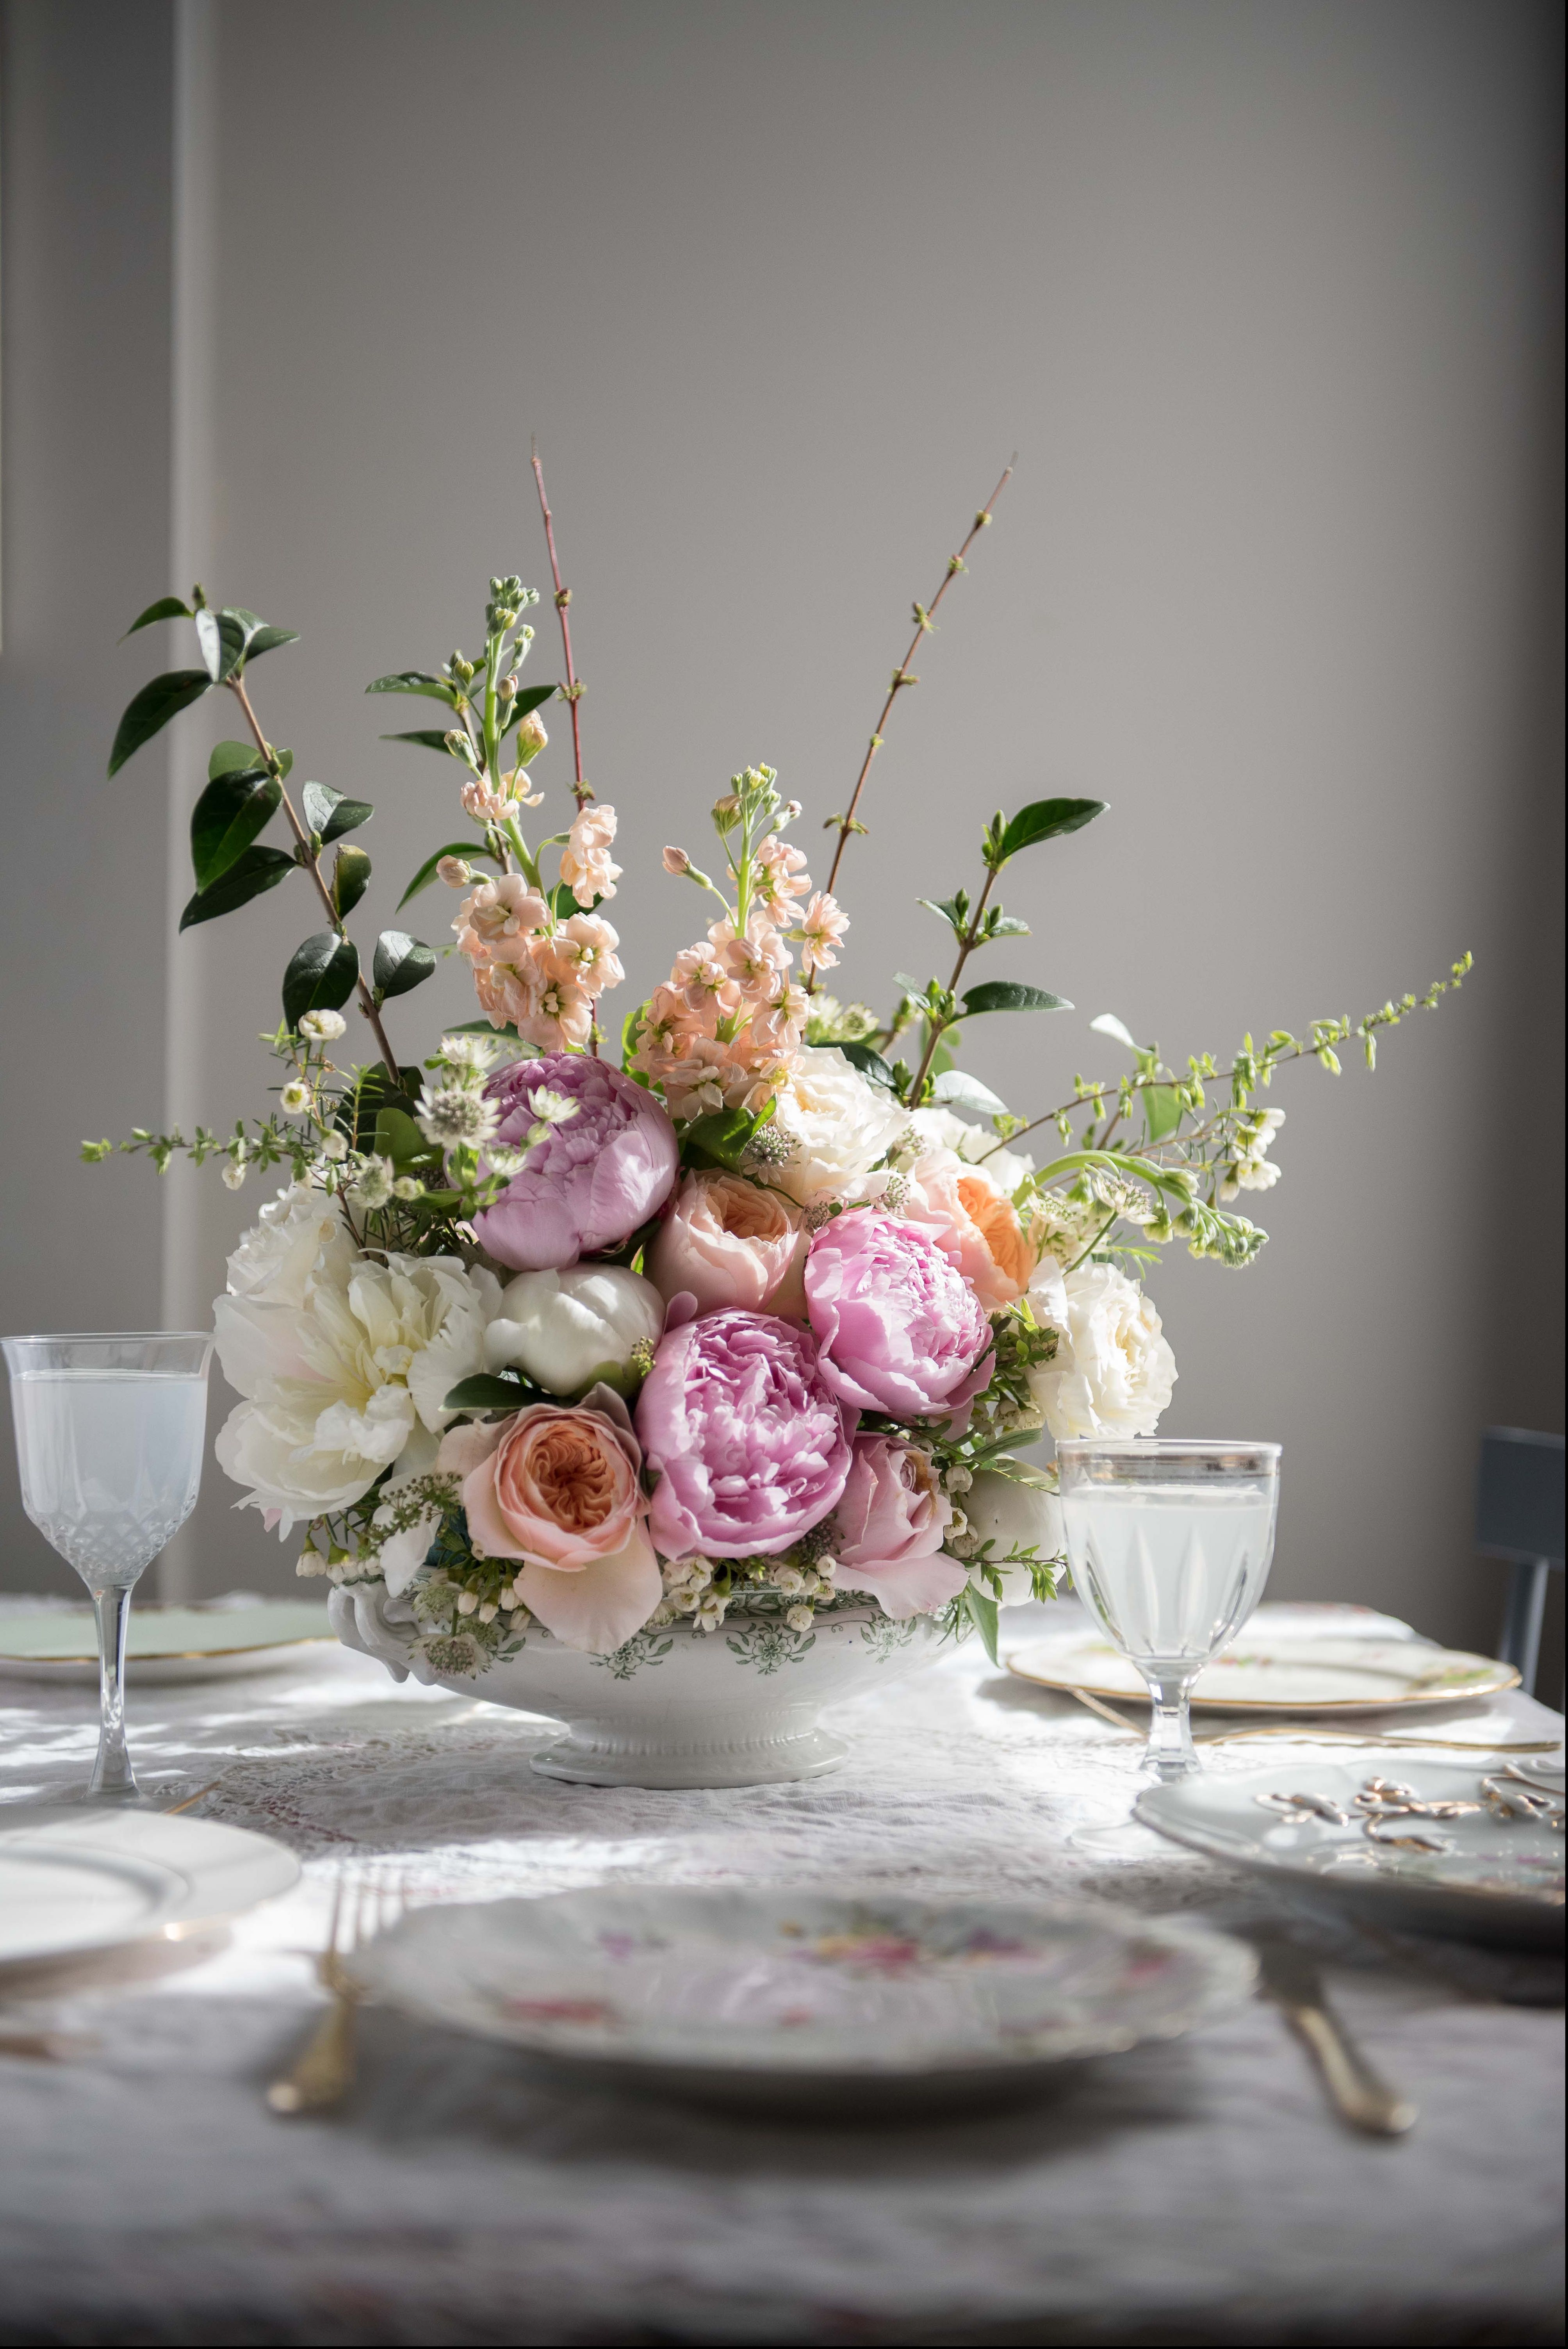 Spring/summer floral arrangements - flower styling tips by Selina Lake